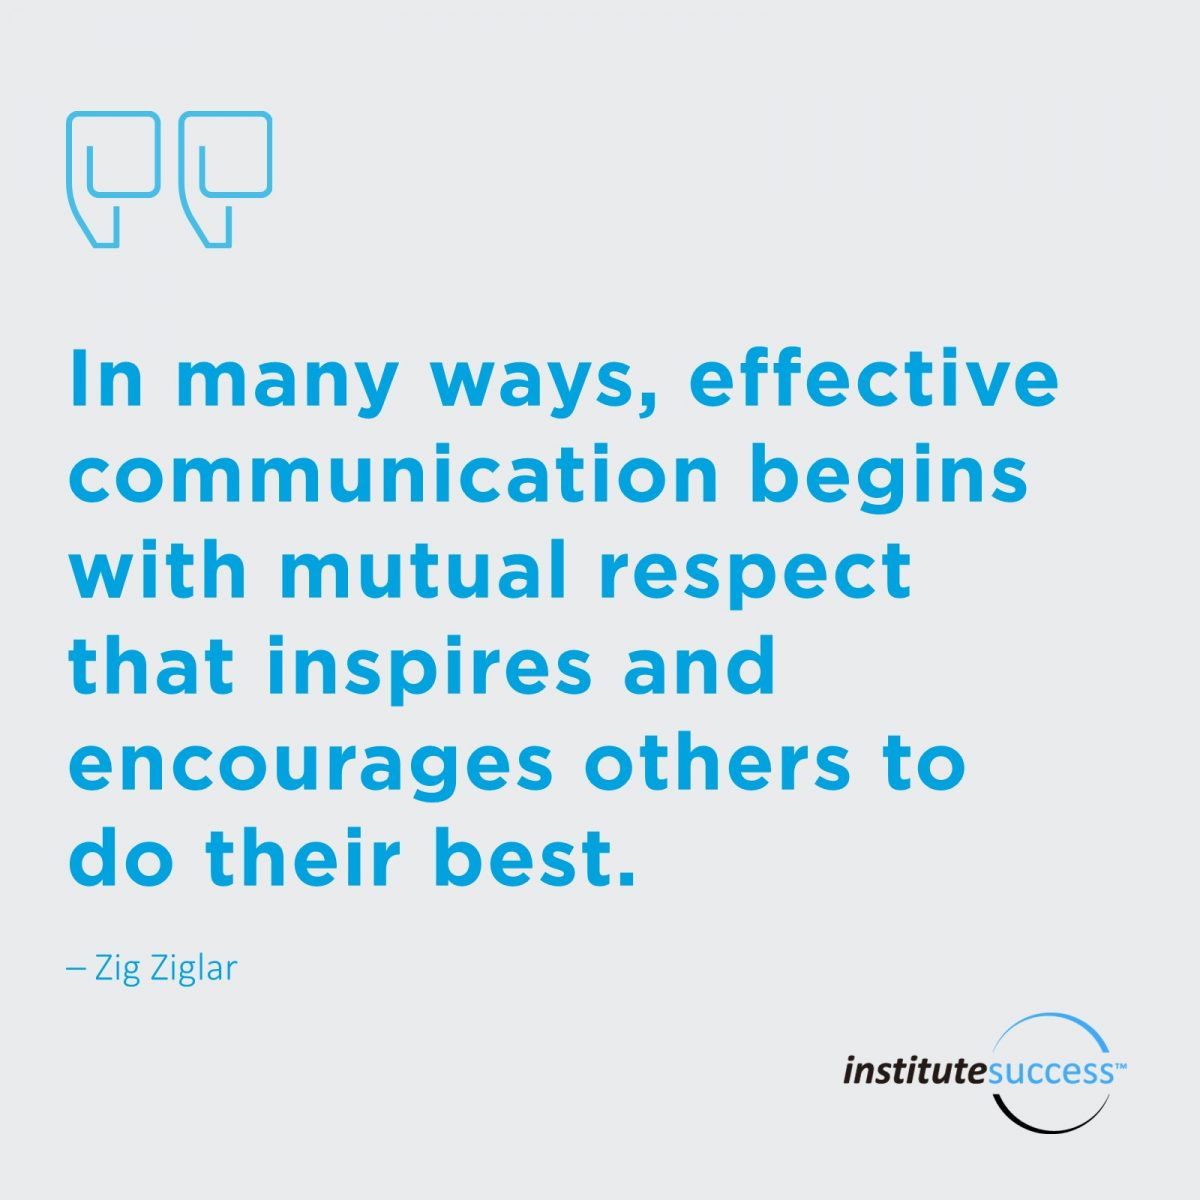 In many ways, effective communication begins with mutual respect that inspires and encourages others to do their best.  – Zig Ziglar